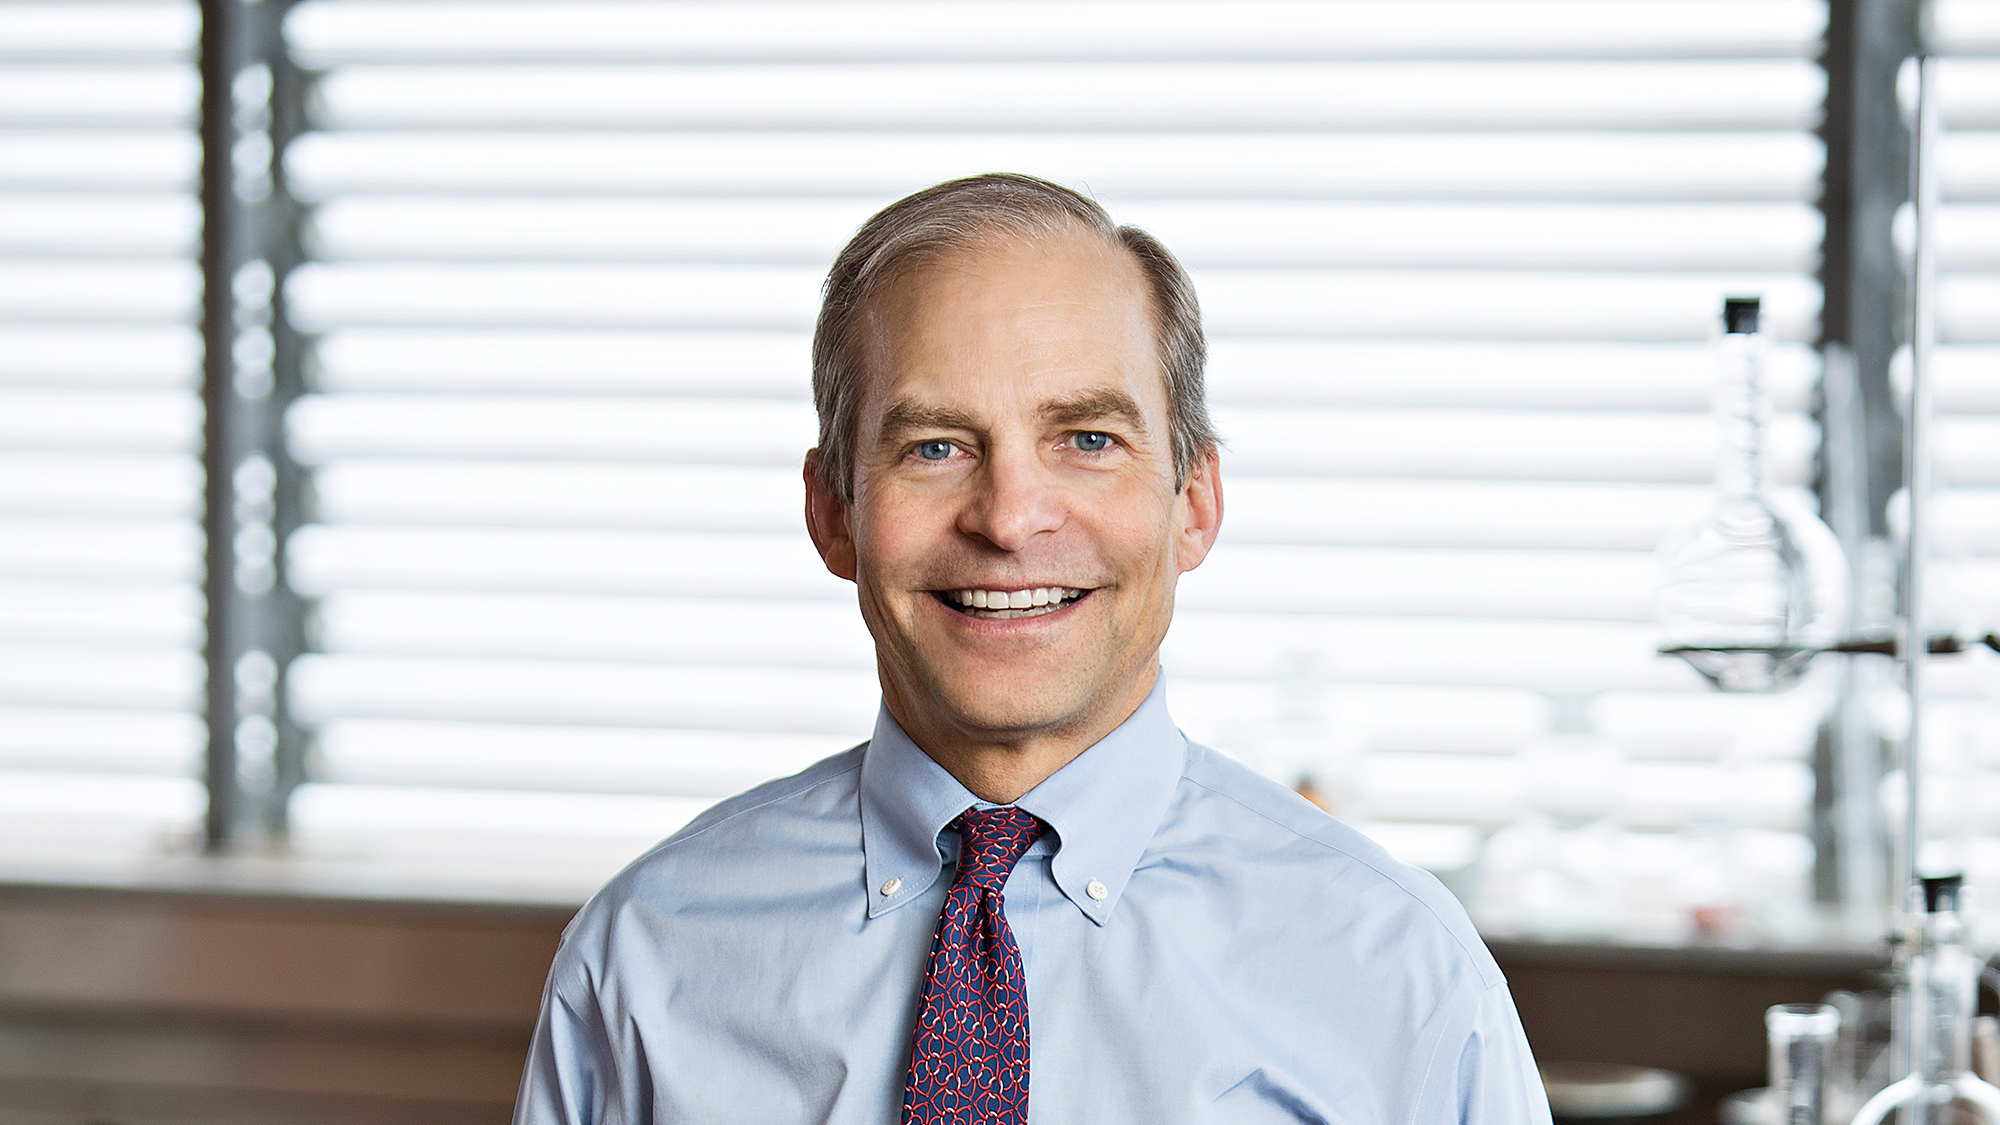 H. Fisk Johnson Advocates for Higher Corporate Standards and Product Transparency